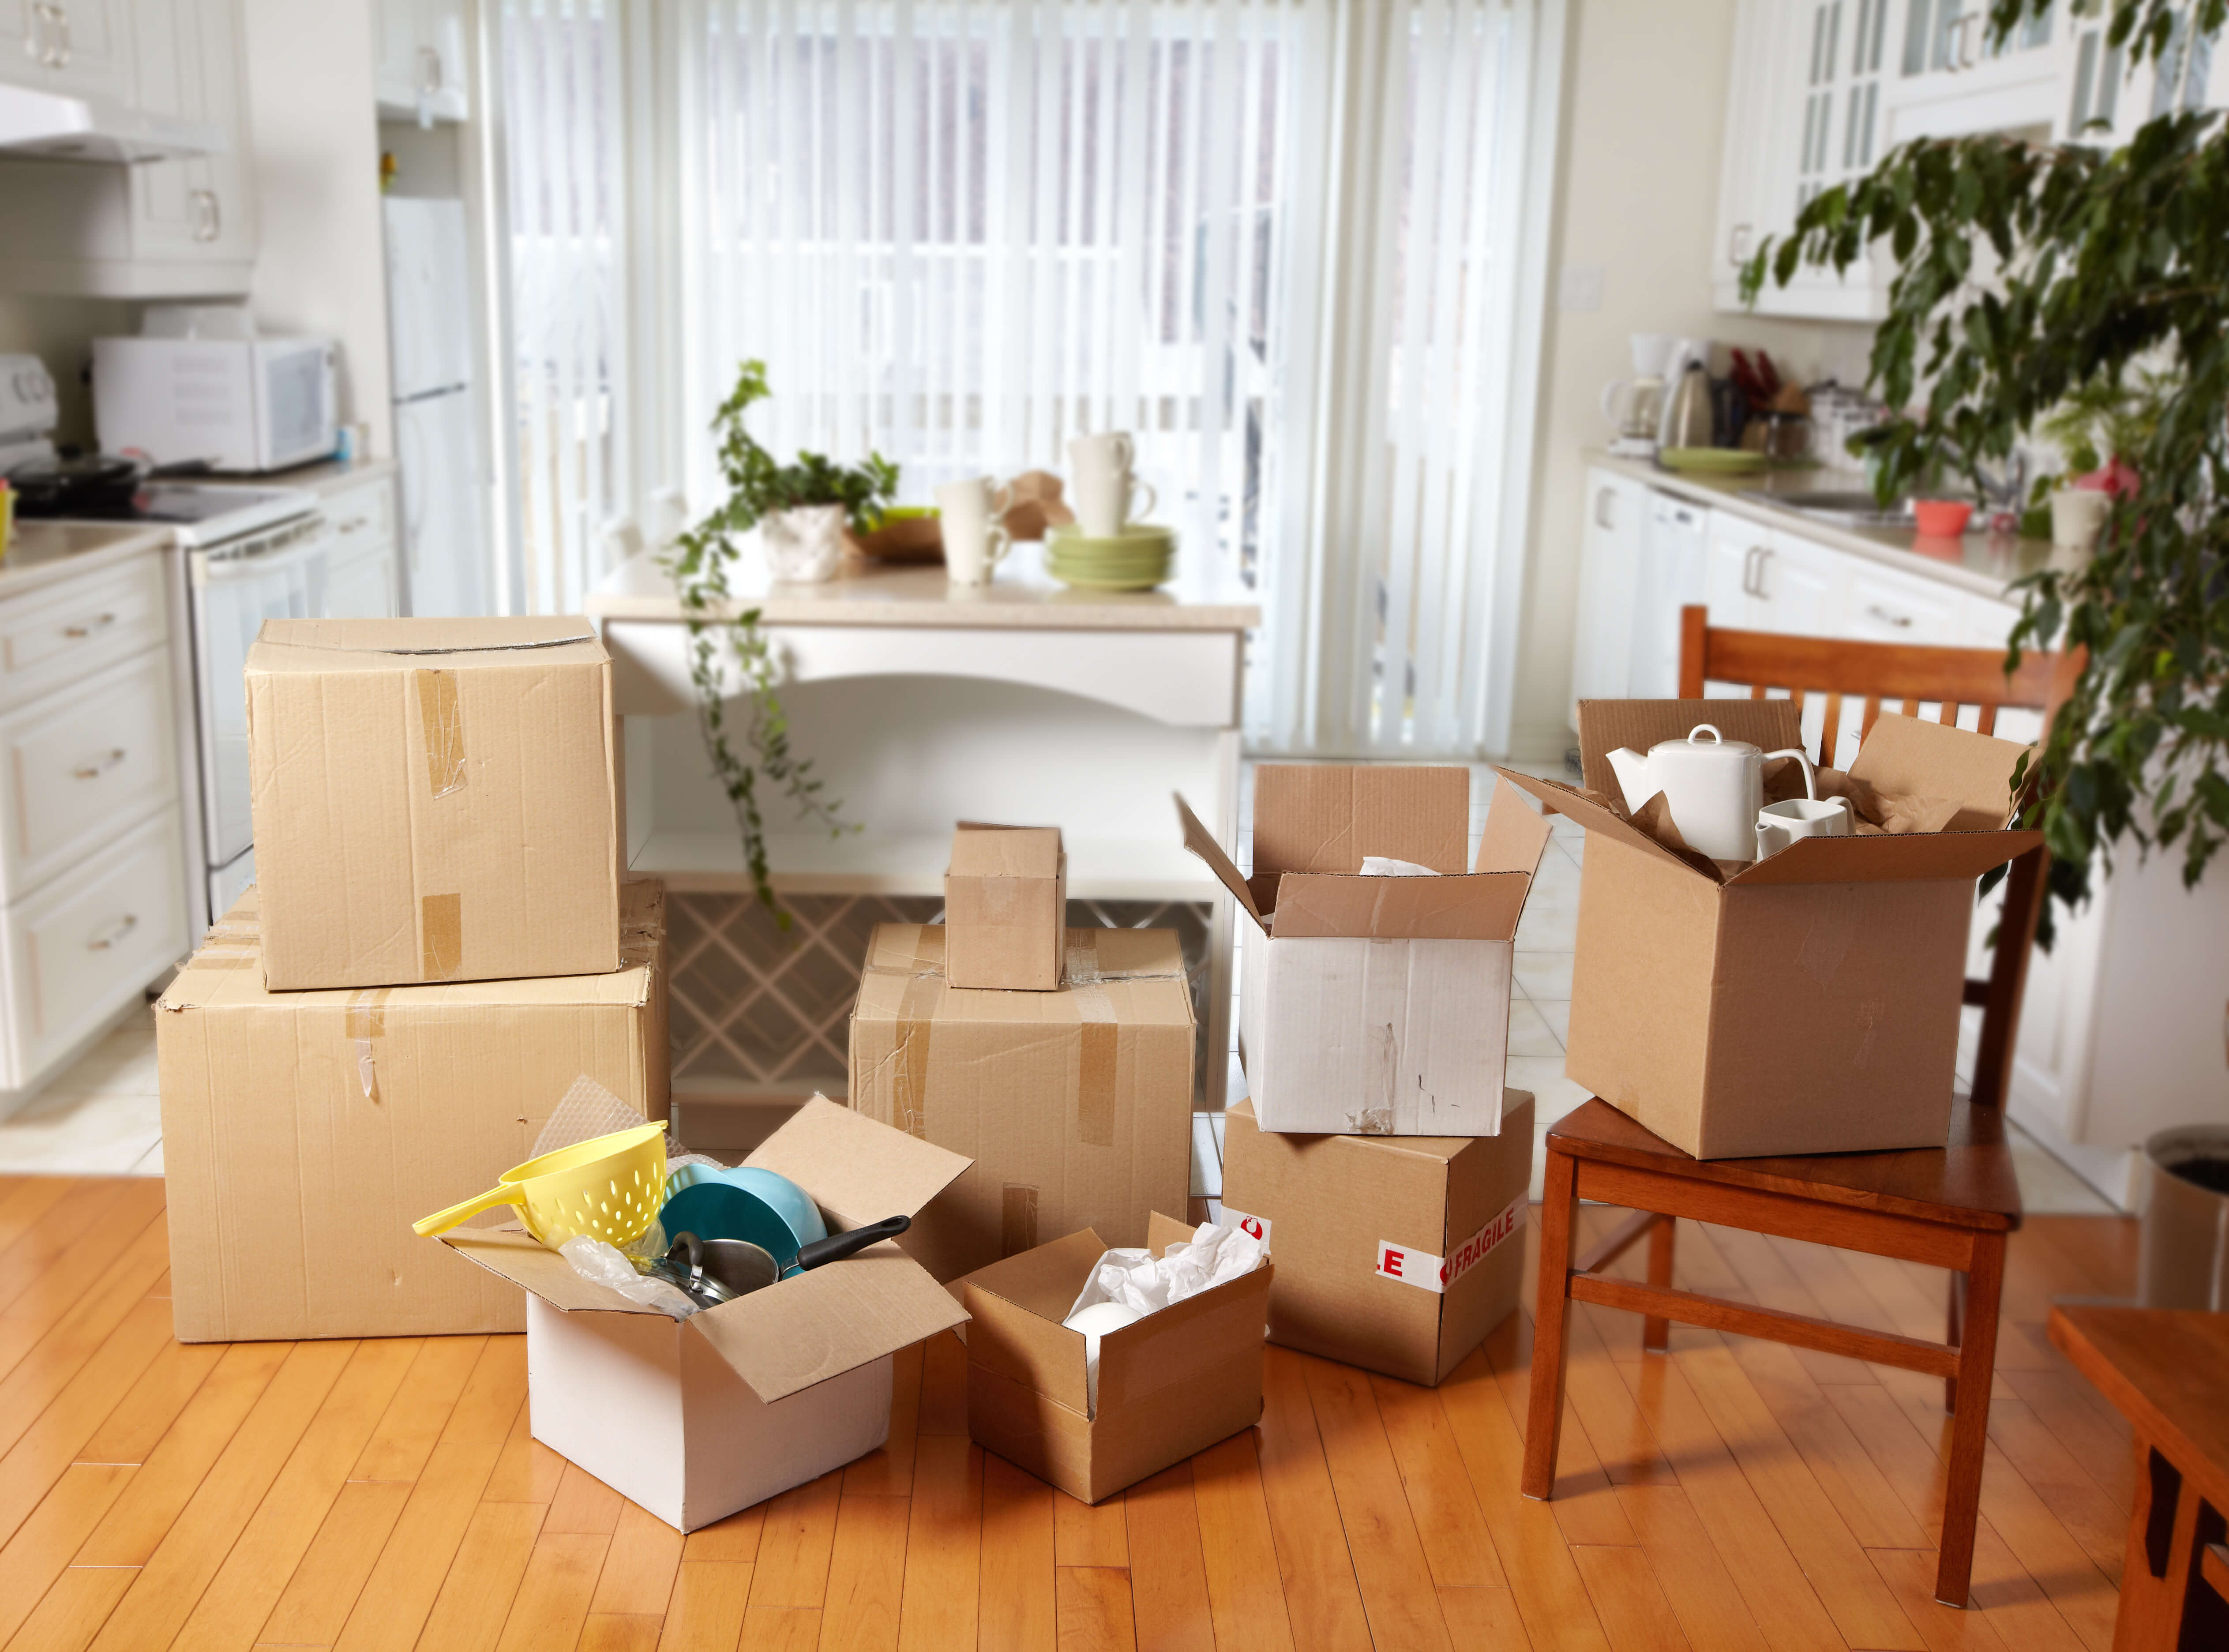 Are you moving to a new home? Consider these reminders